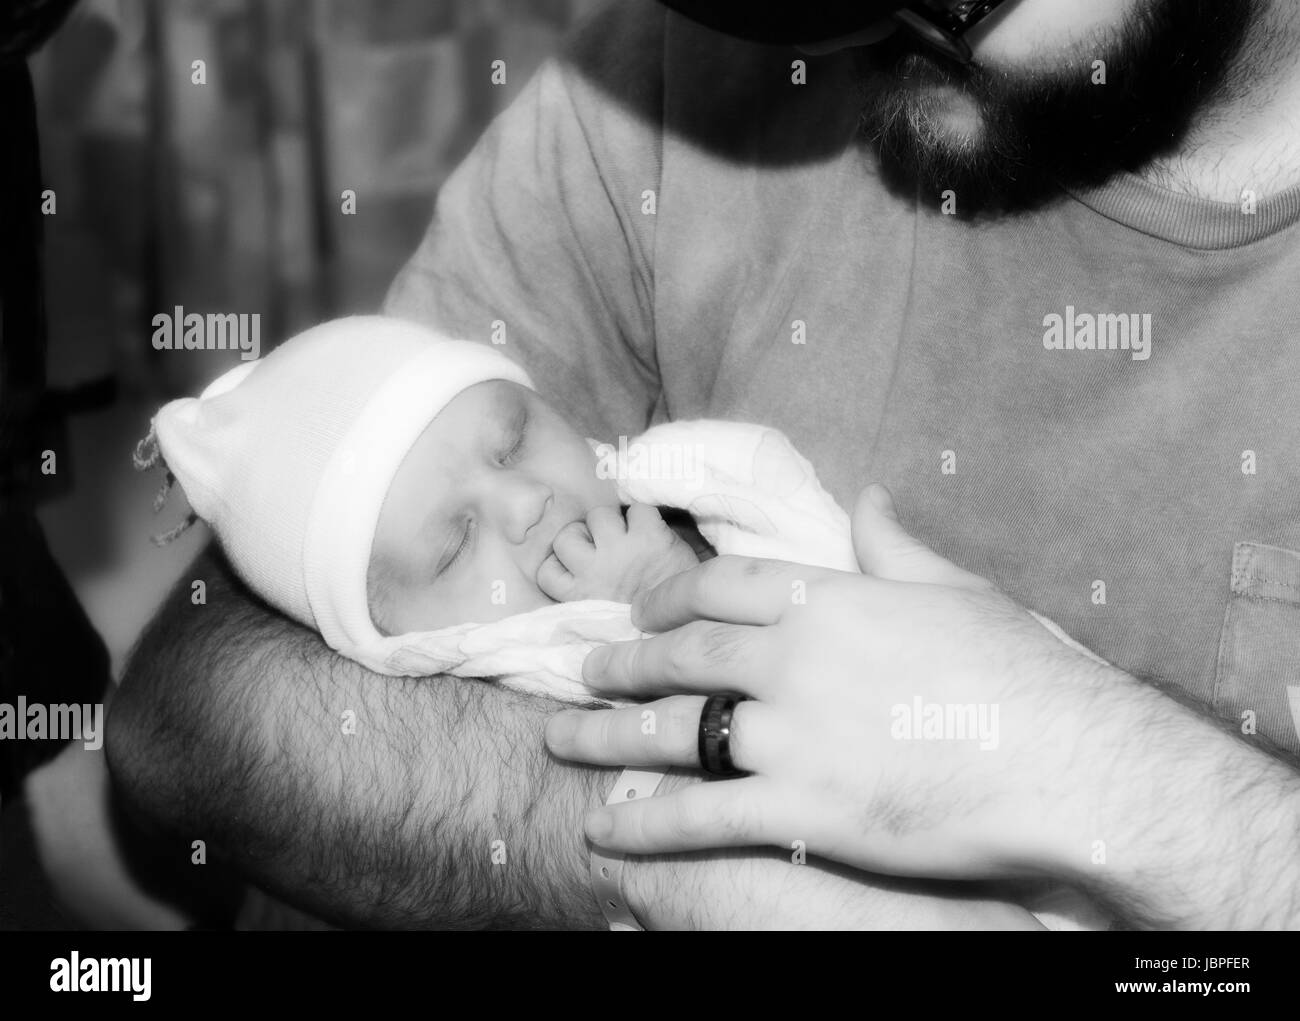 New Father Holds His Infant Daughter While She sleeps - Stock Image